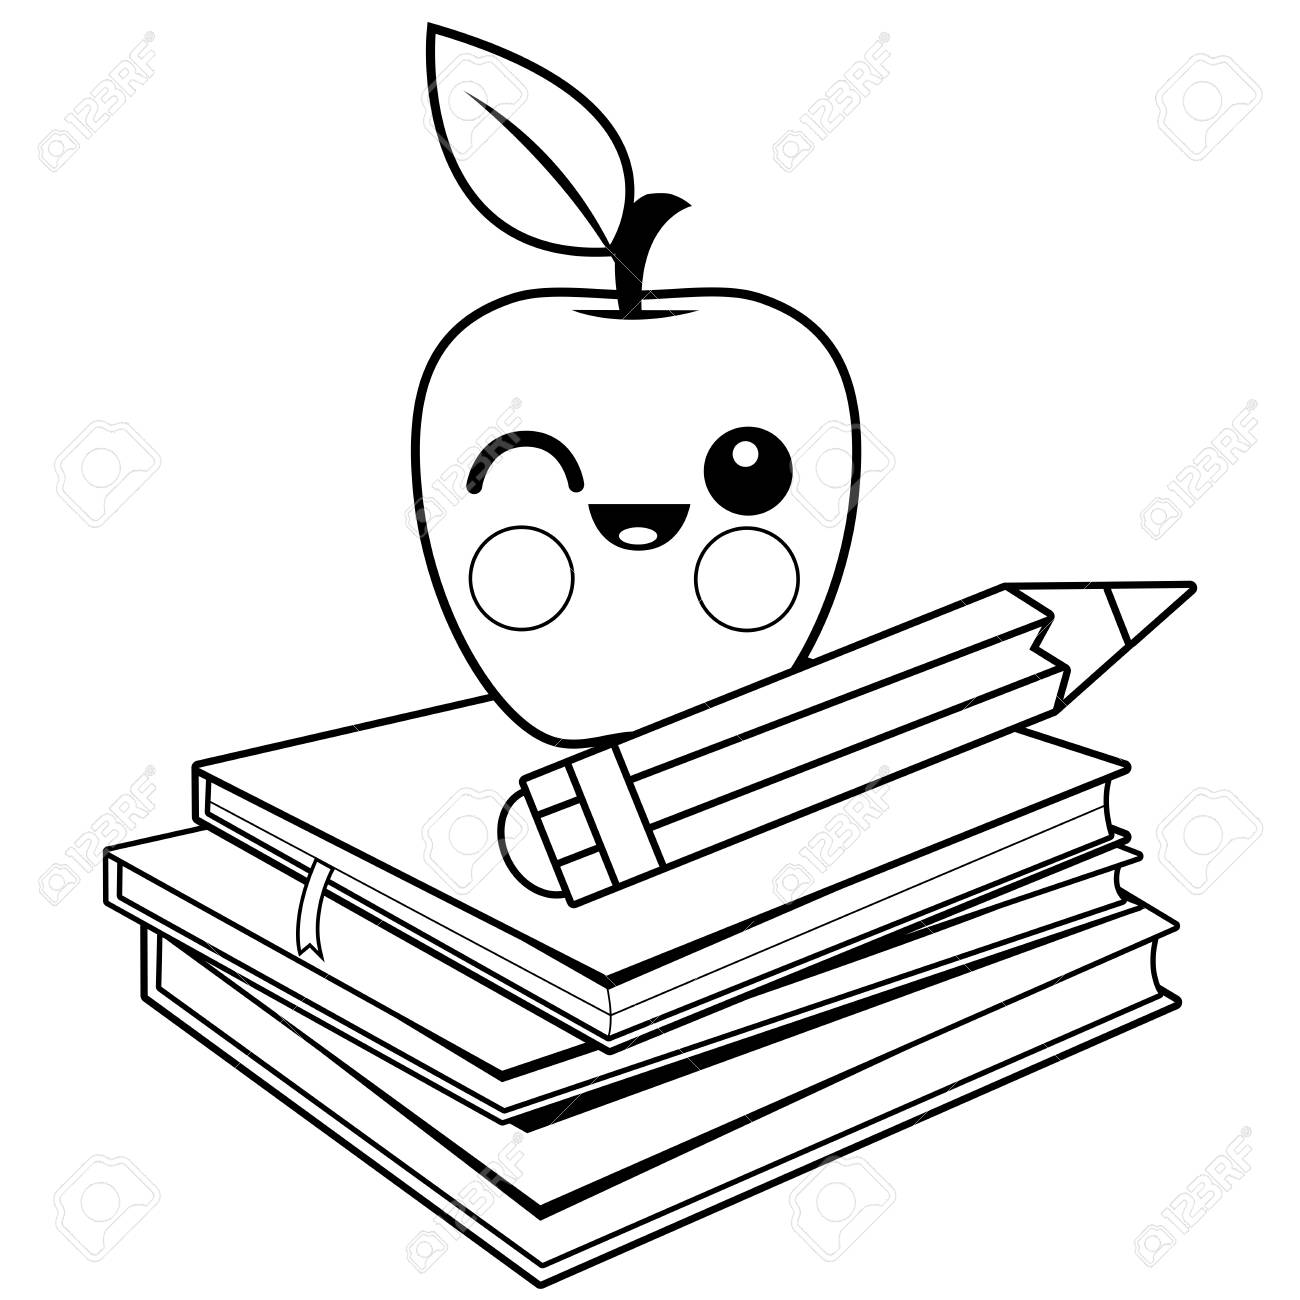 hight resolution of apple books and pencil black and white coloring book page stock vector